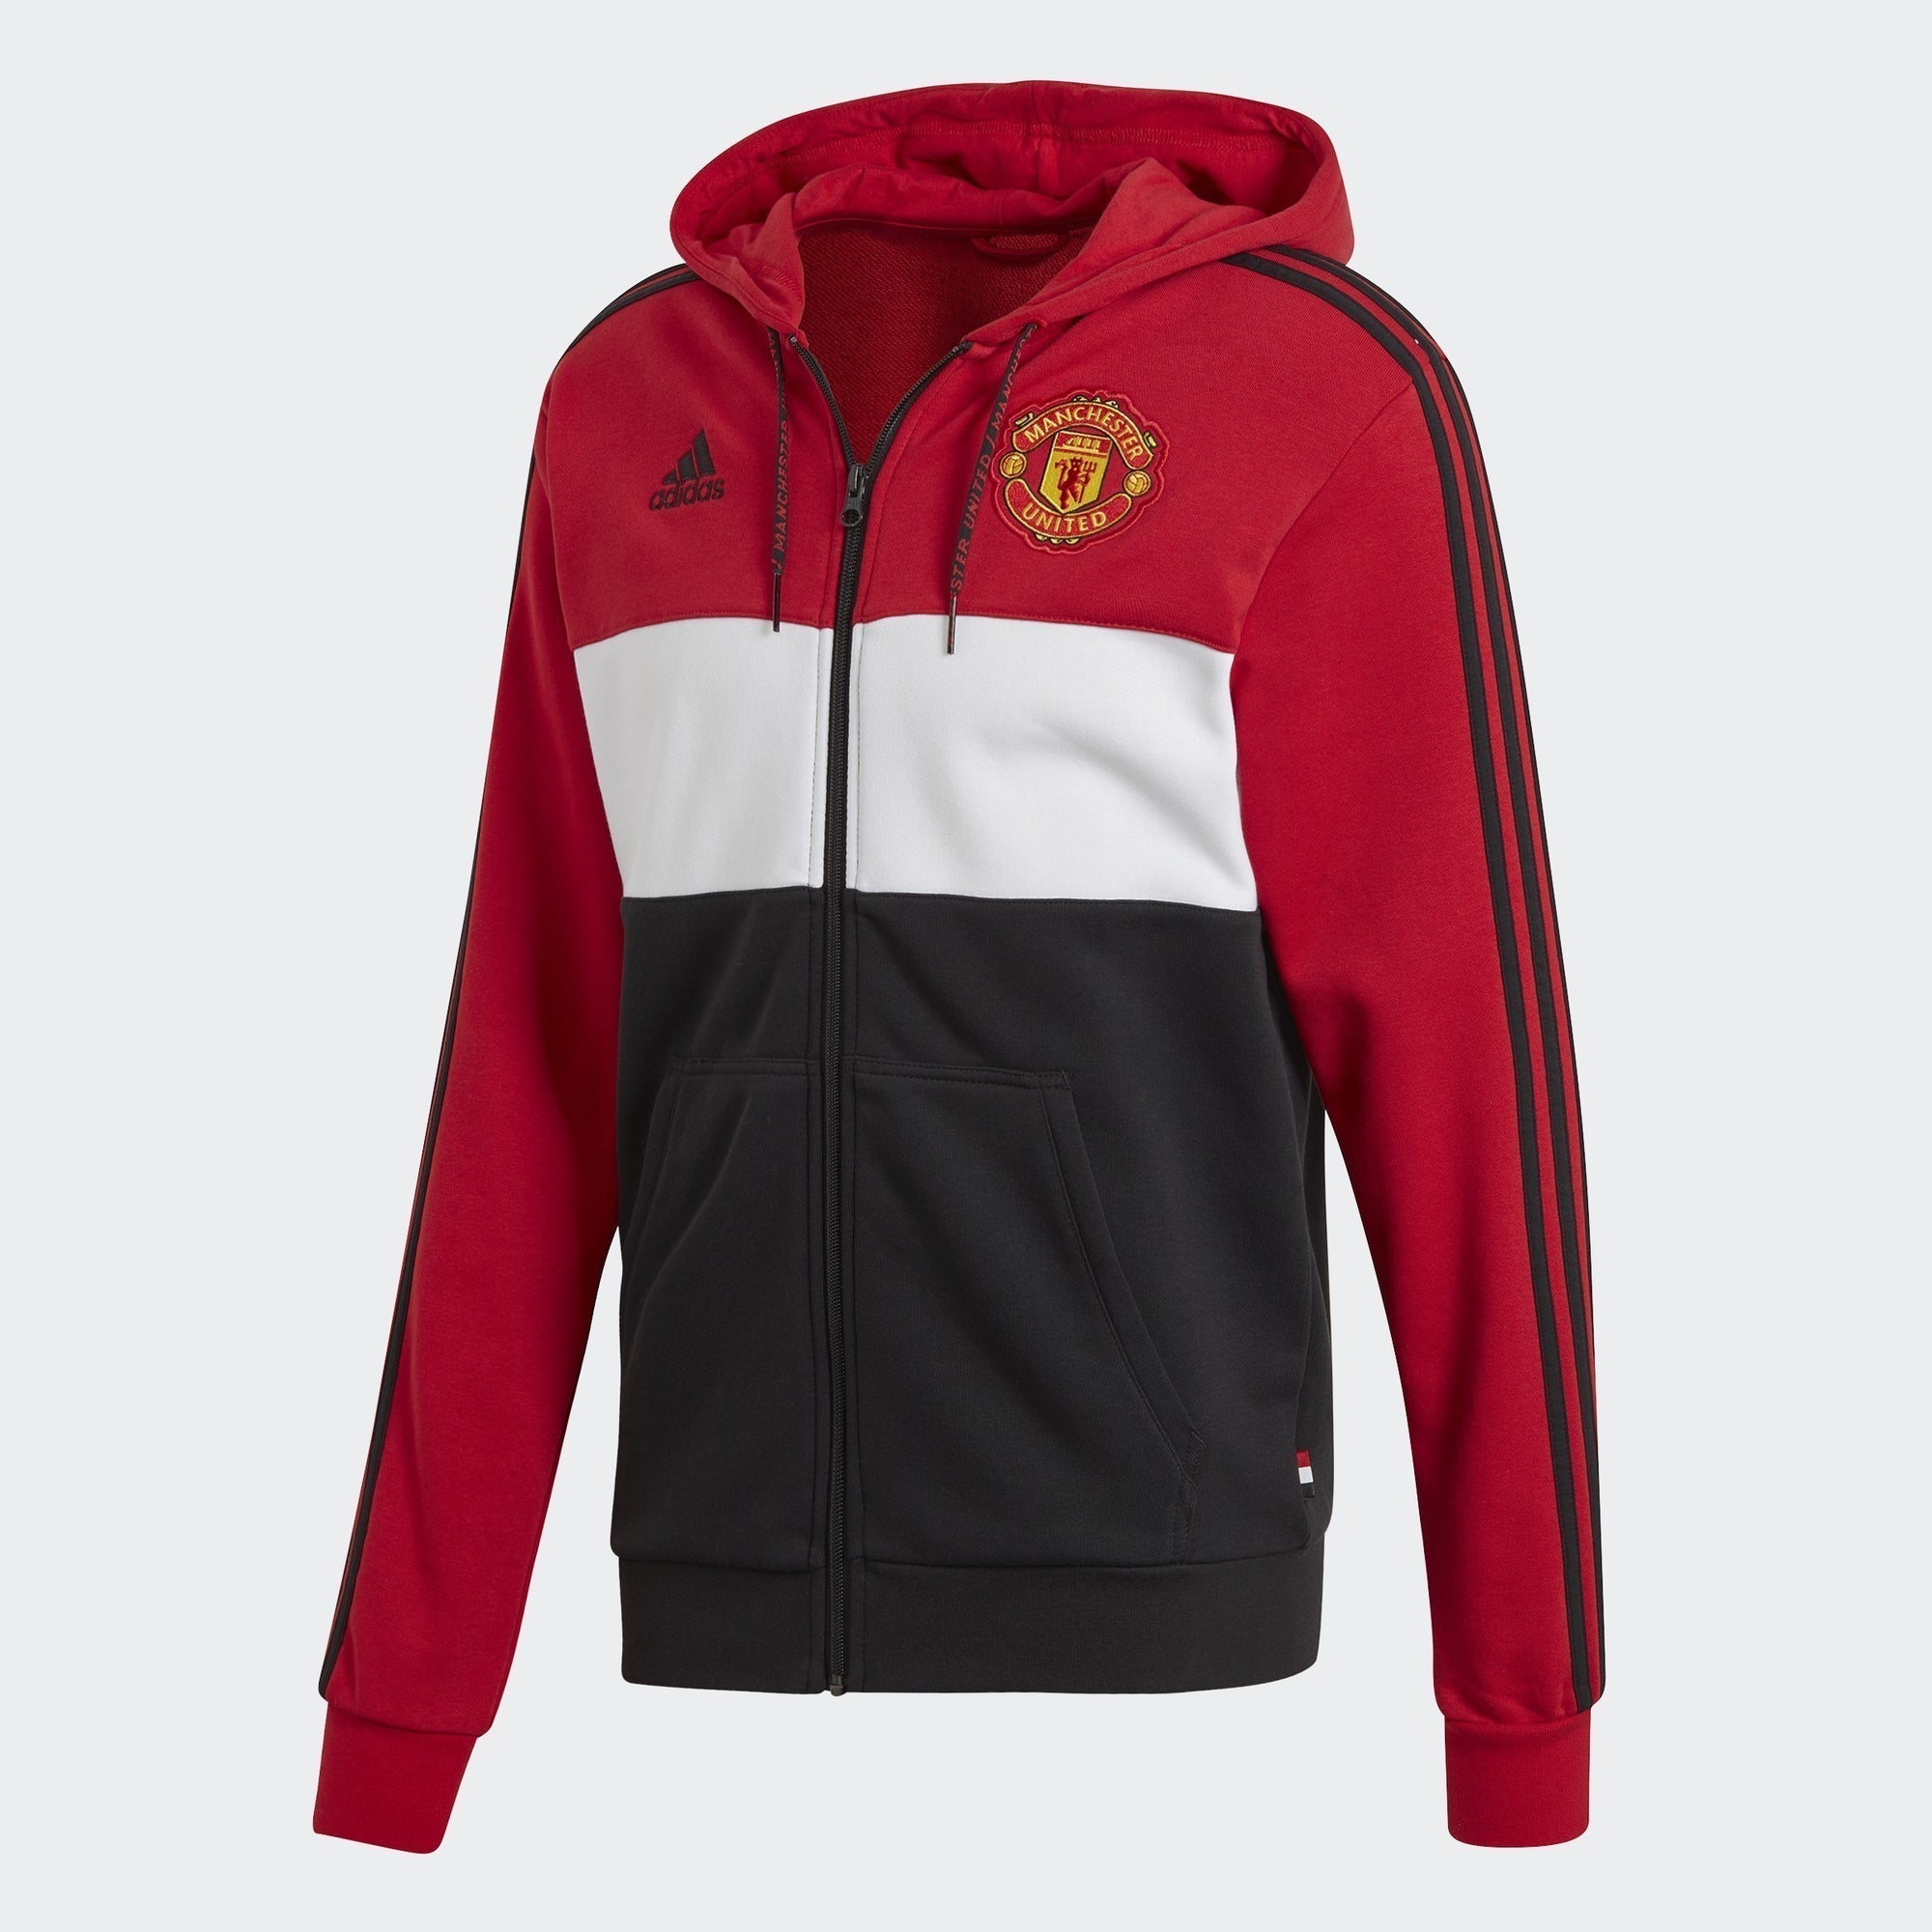 Men's Manchester United Hoodie - Real Red/White/Black